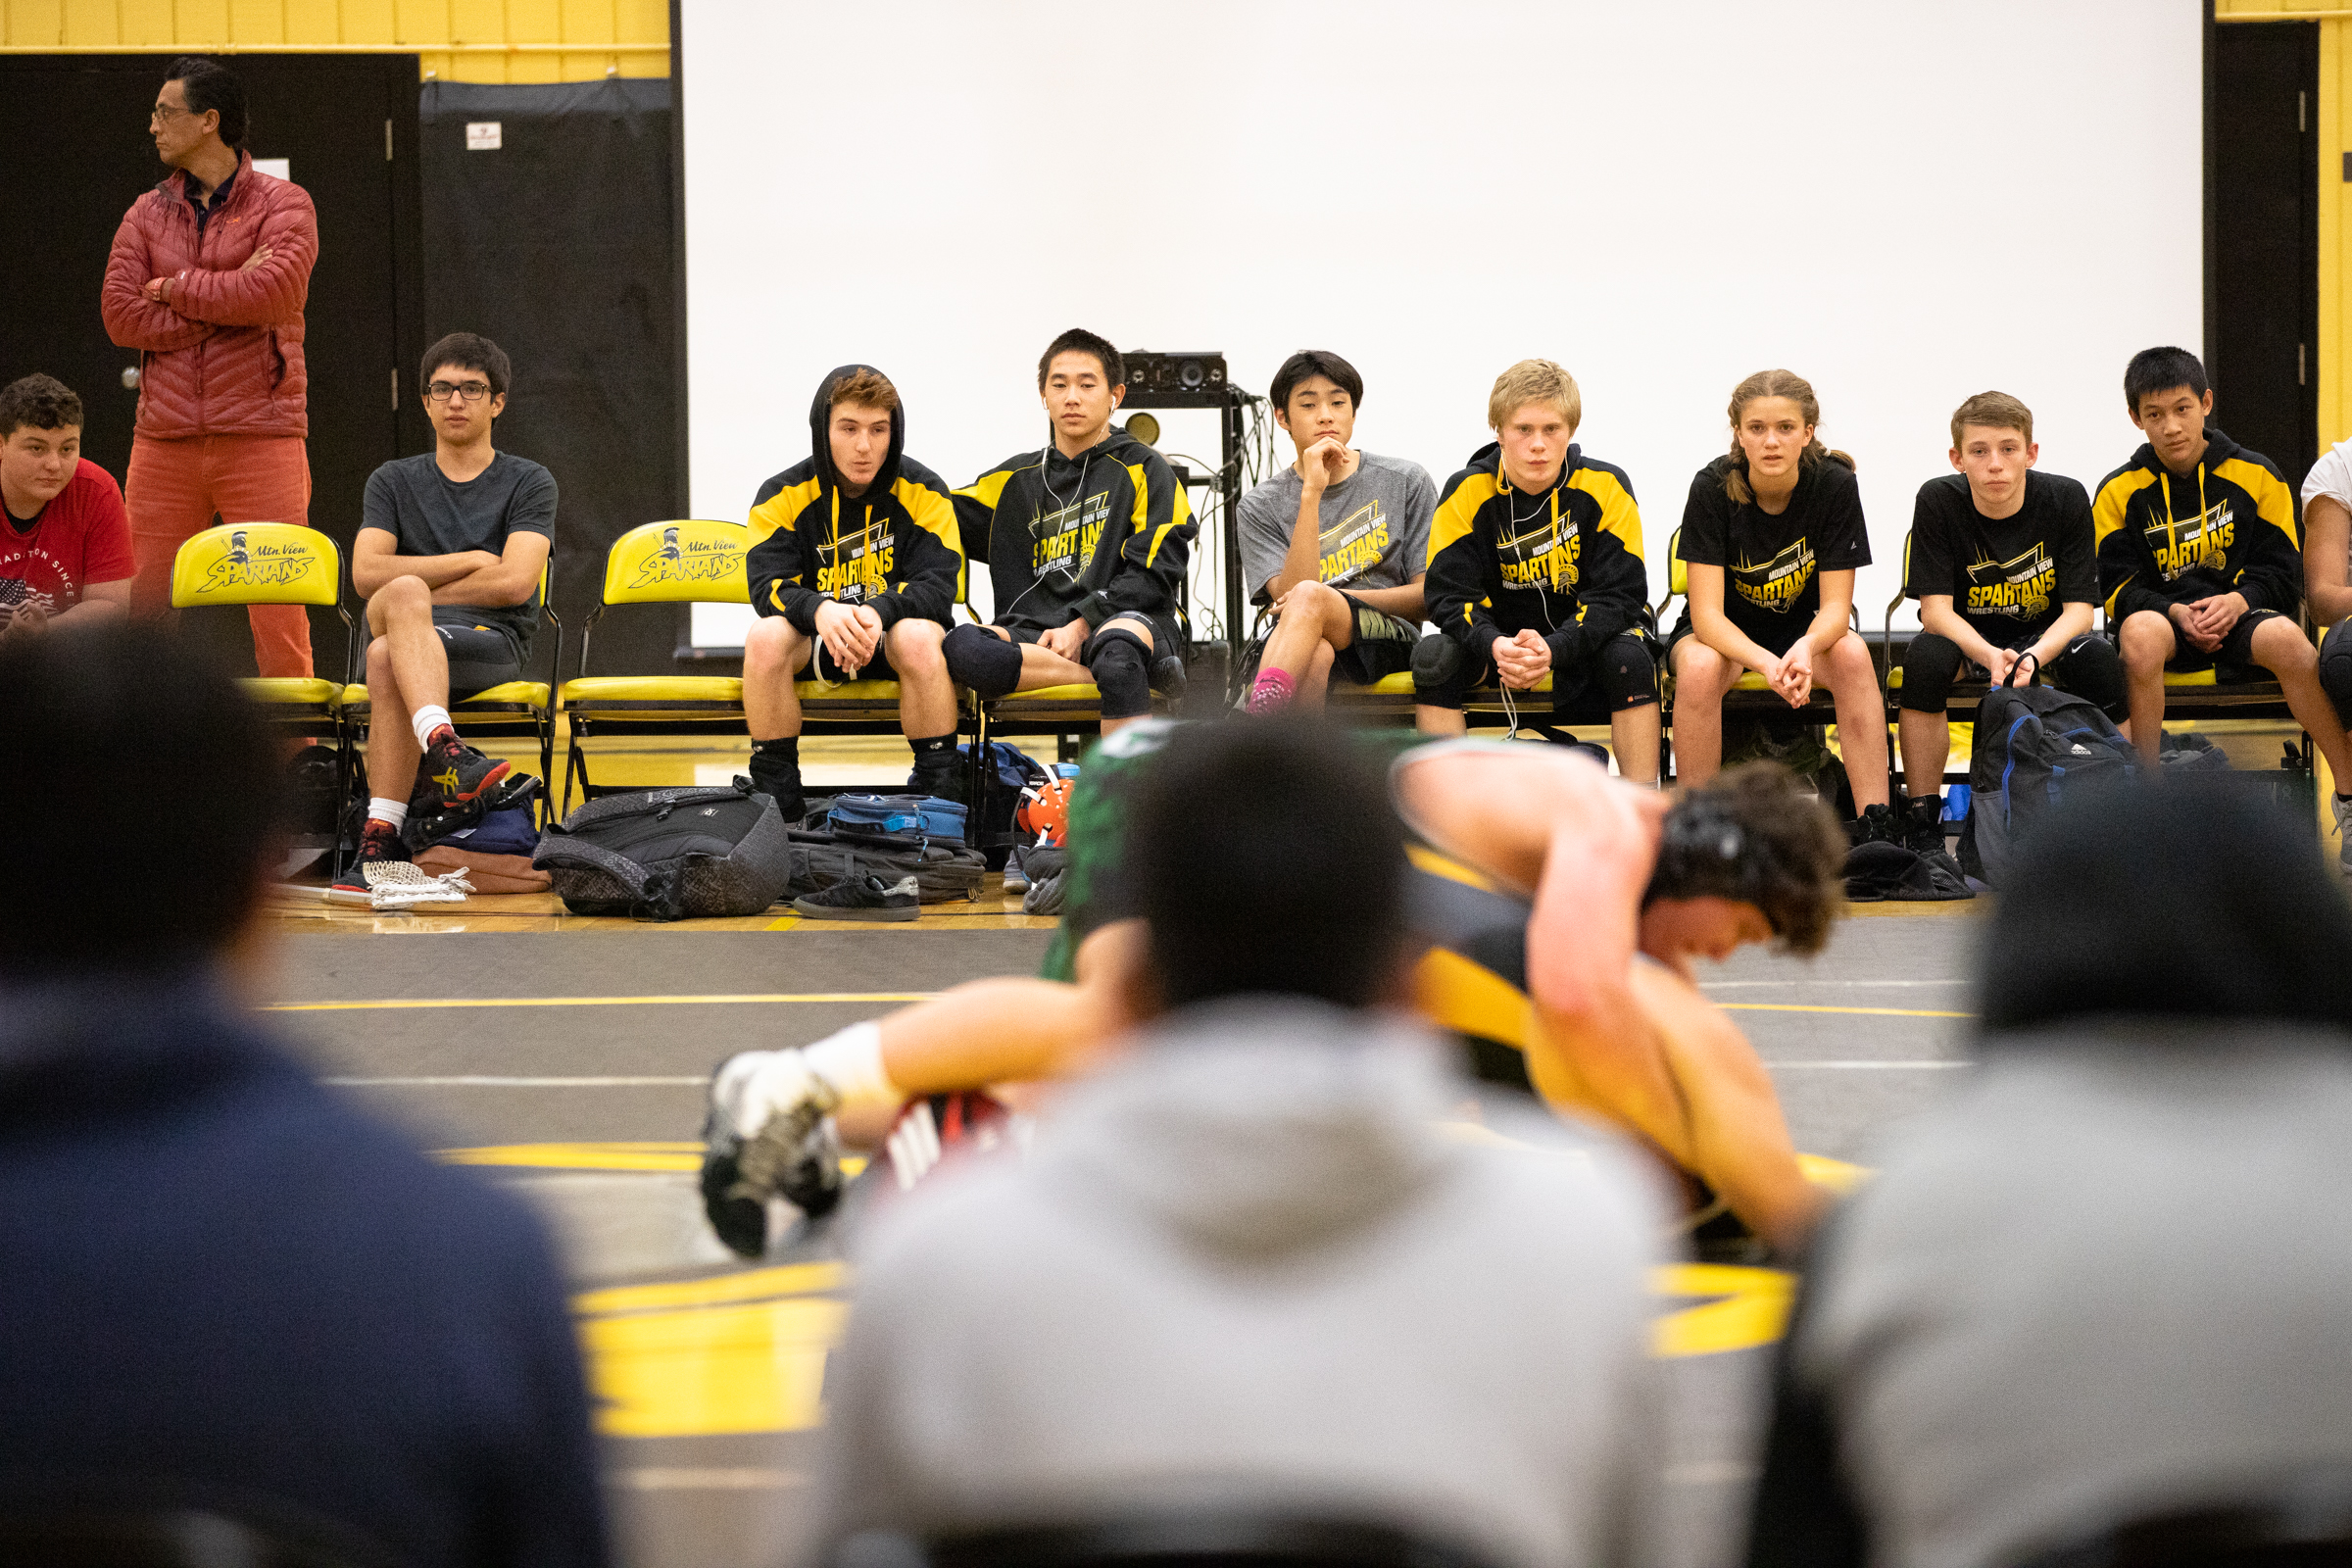 Paris Harrell, 15, is the only female member of Mountain View High School's wrestling team. She sits with her teammates watching a fight against Homestead High School at a home meet in Mountain View, California, on Jan. 31.